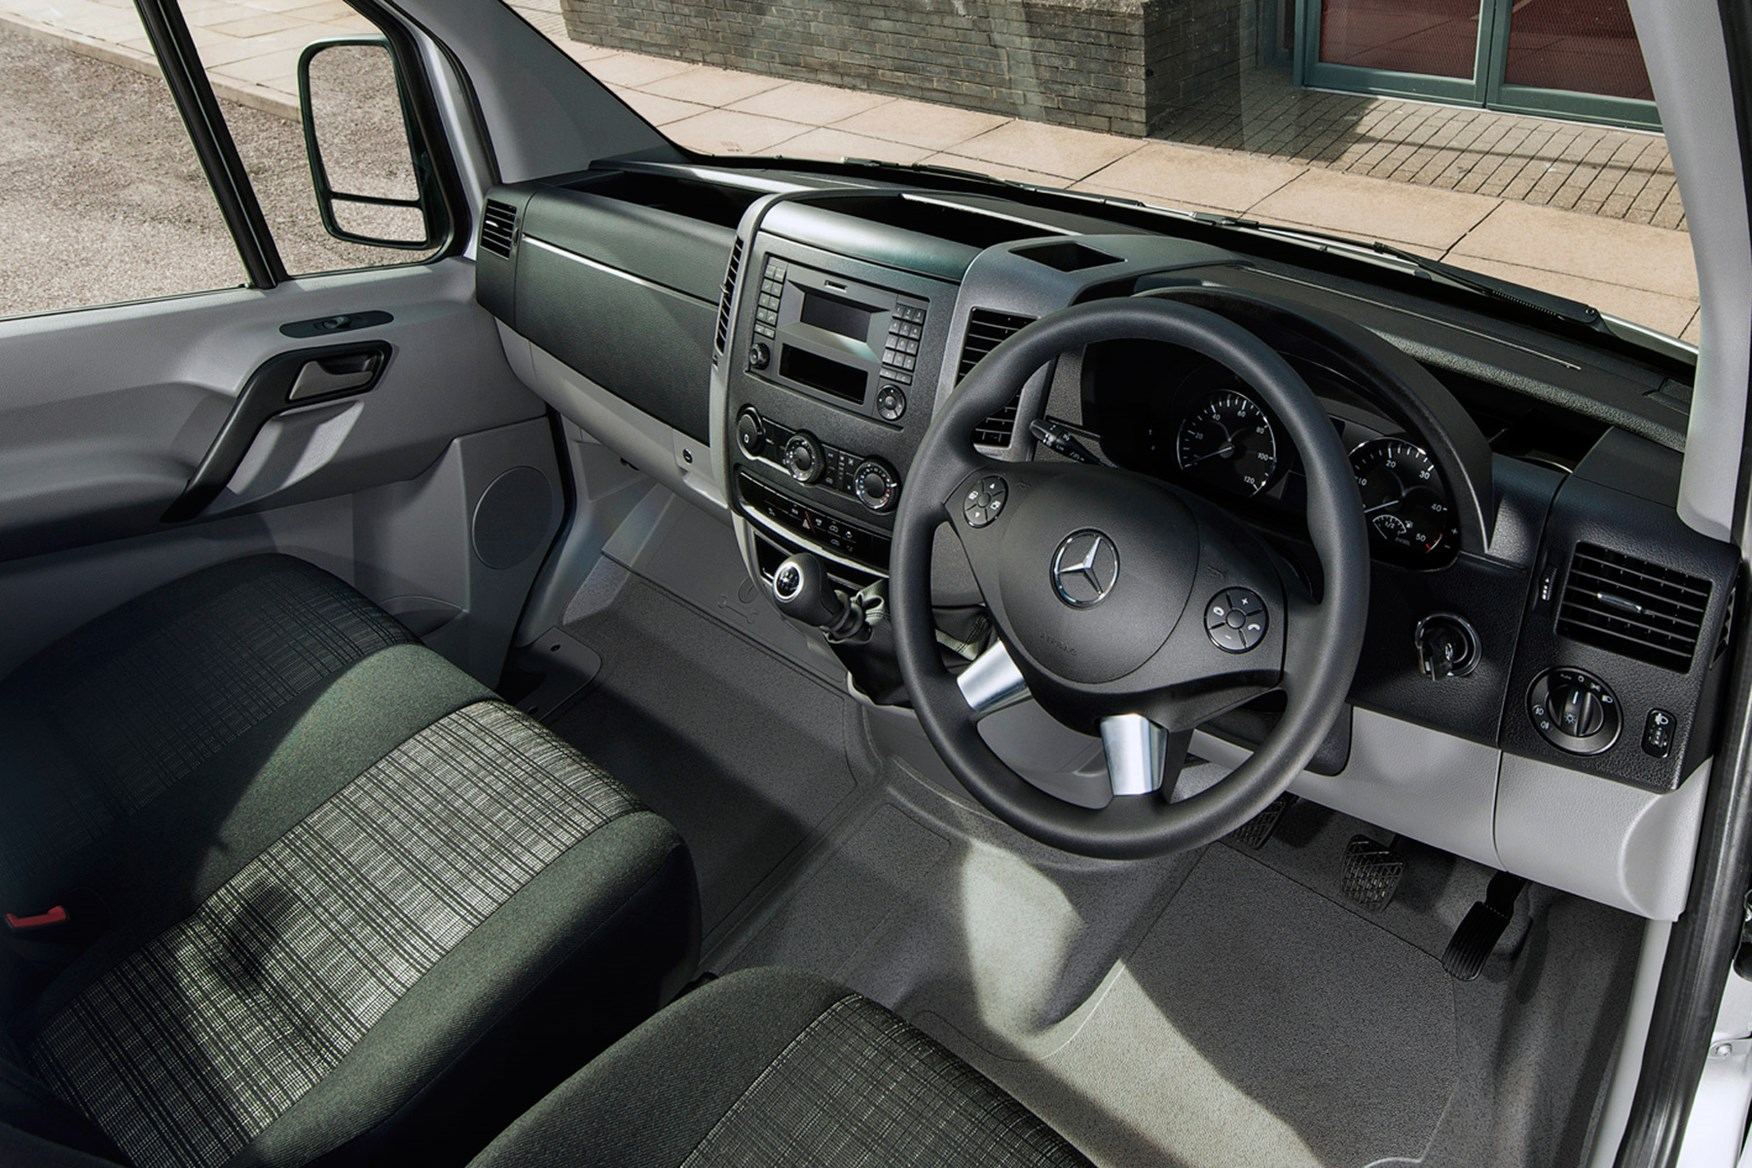 Mercedes-Benz Sprinter full review on Parkers Vans - cabin